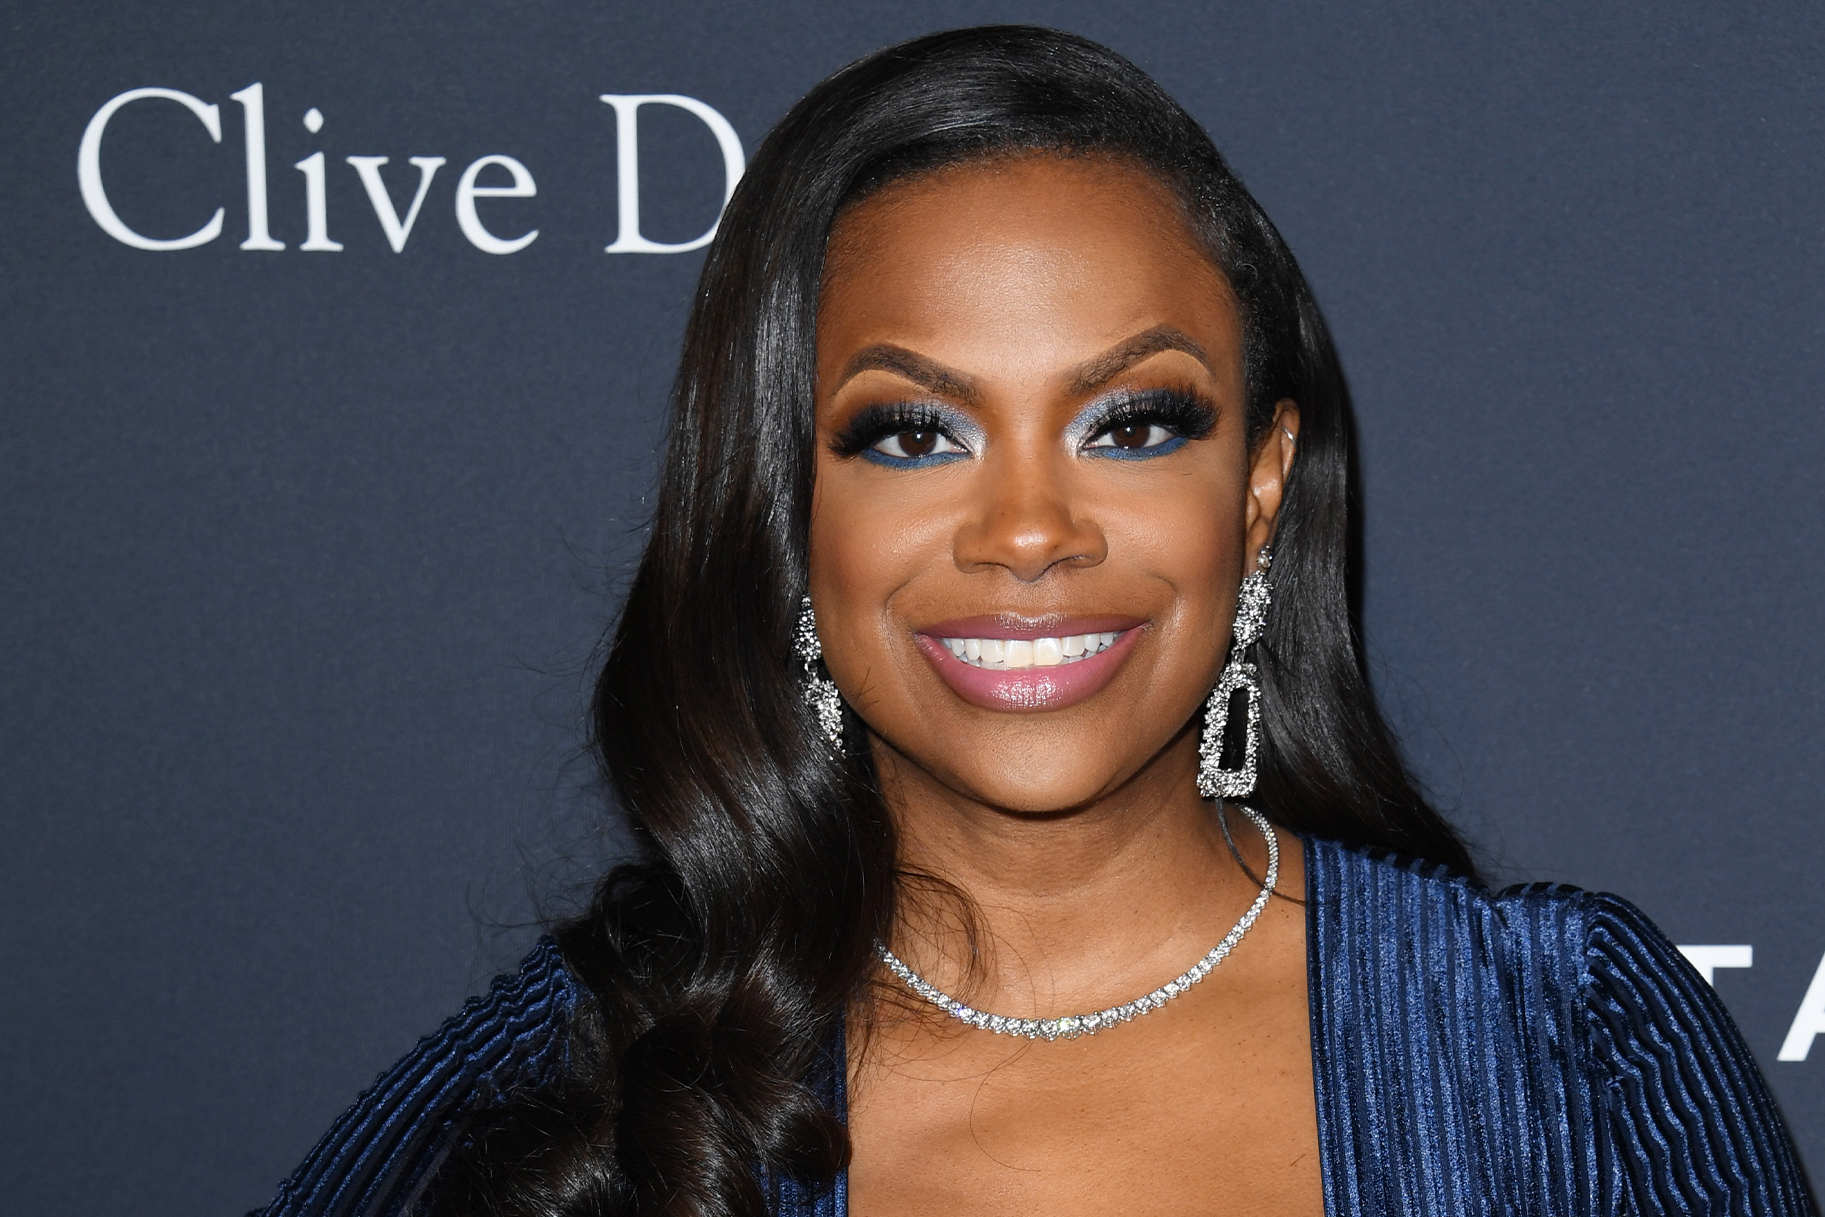 kandi-burruss-fans-praise-her-latest-outfit-check-it-out-here